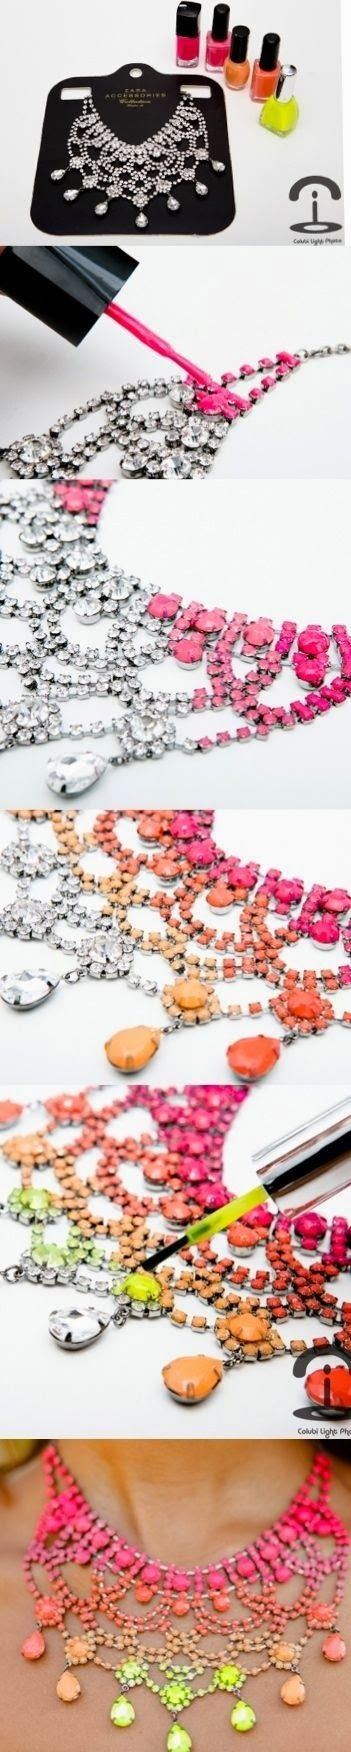 DIY Colored Necklace